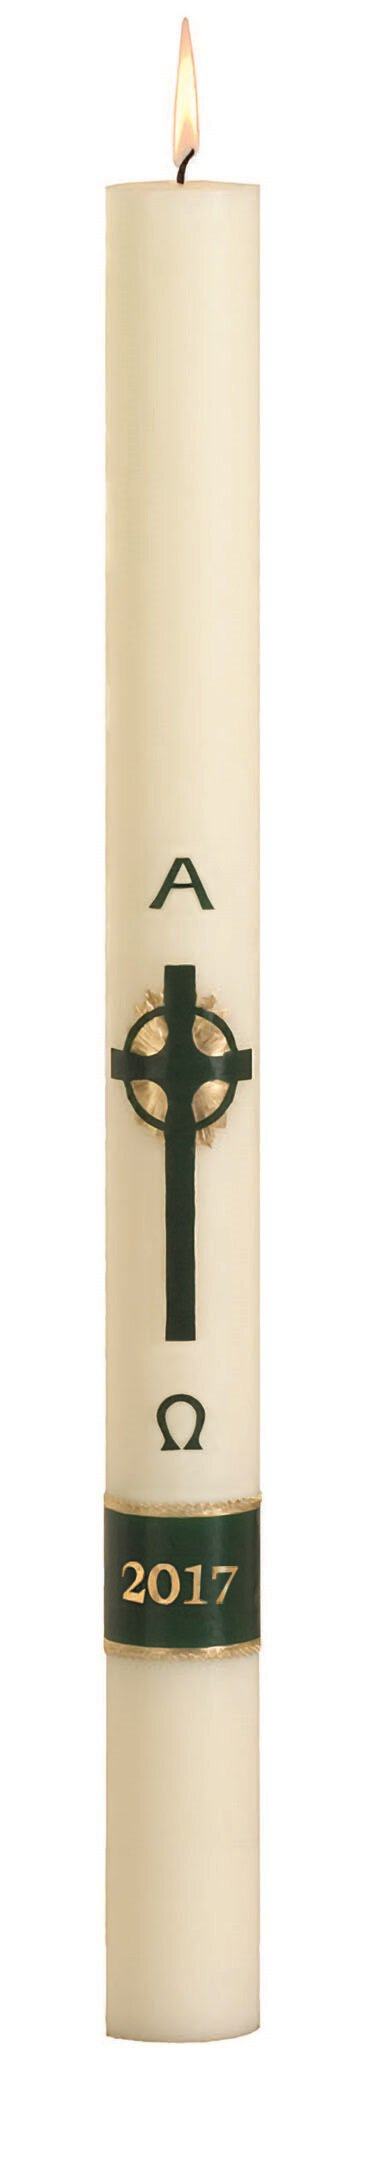 No 8 Emerald Cross Paschal Candle